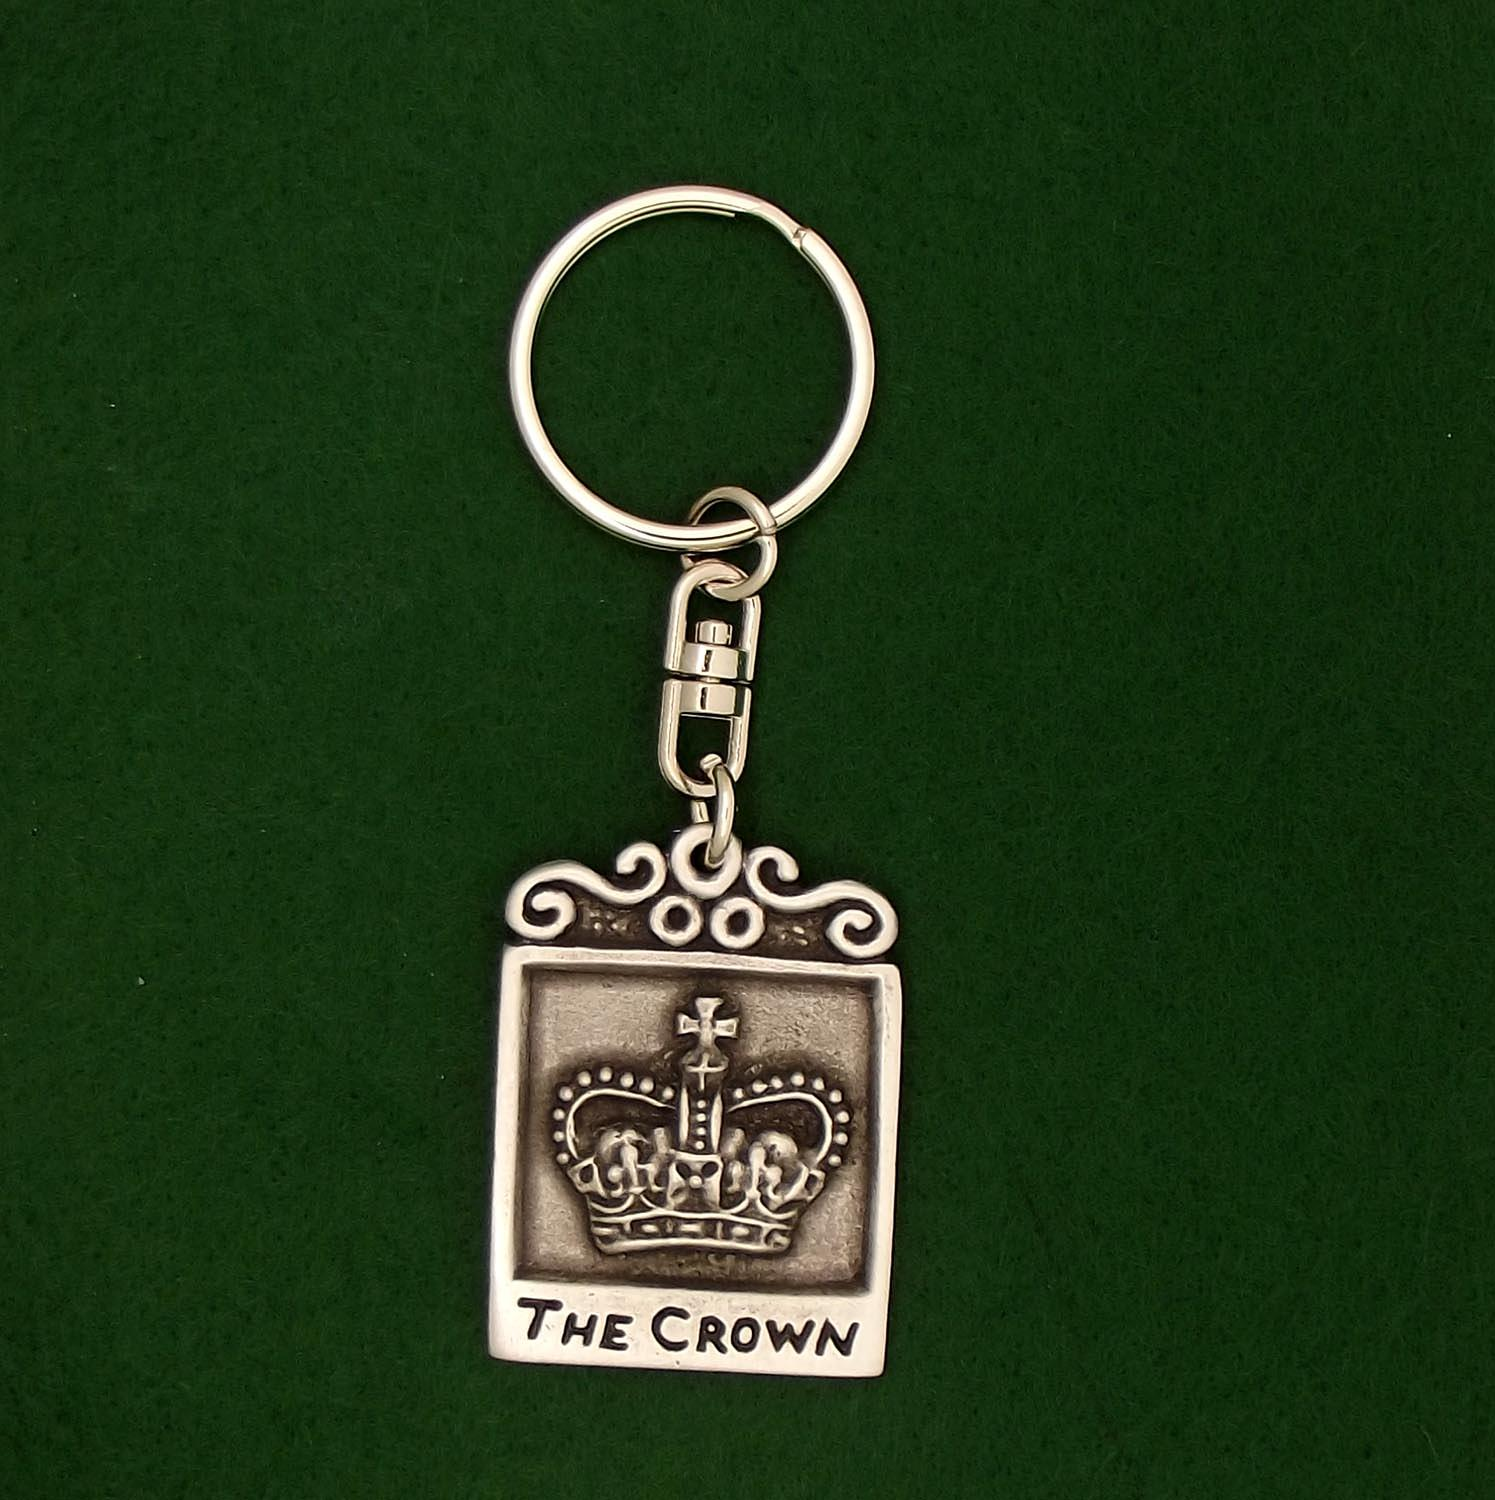 KR1593 The Crown